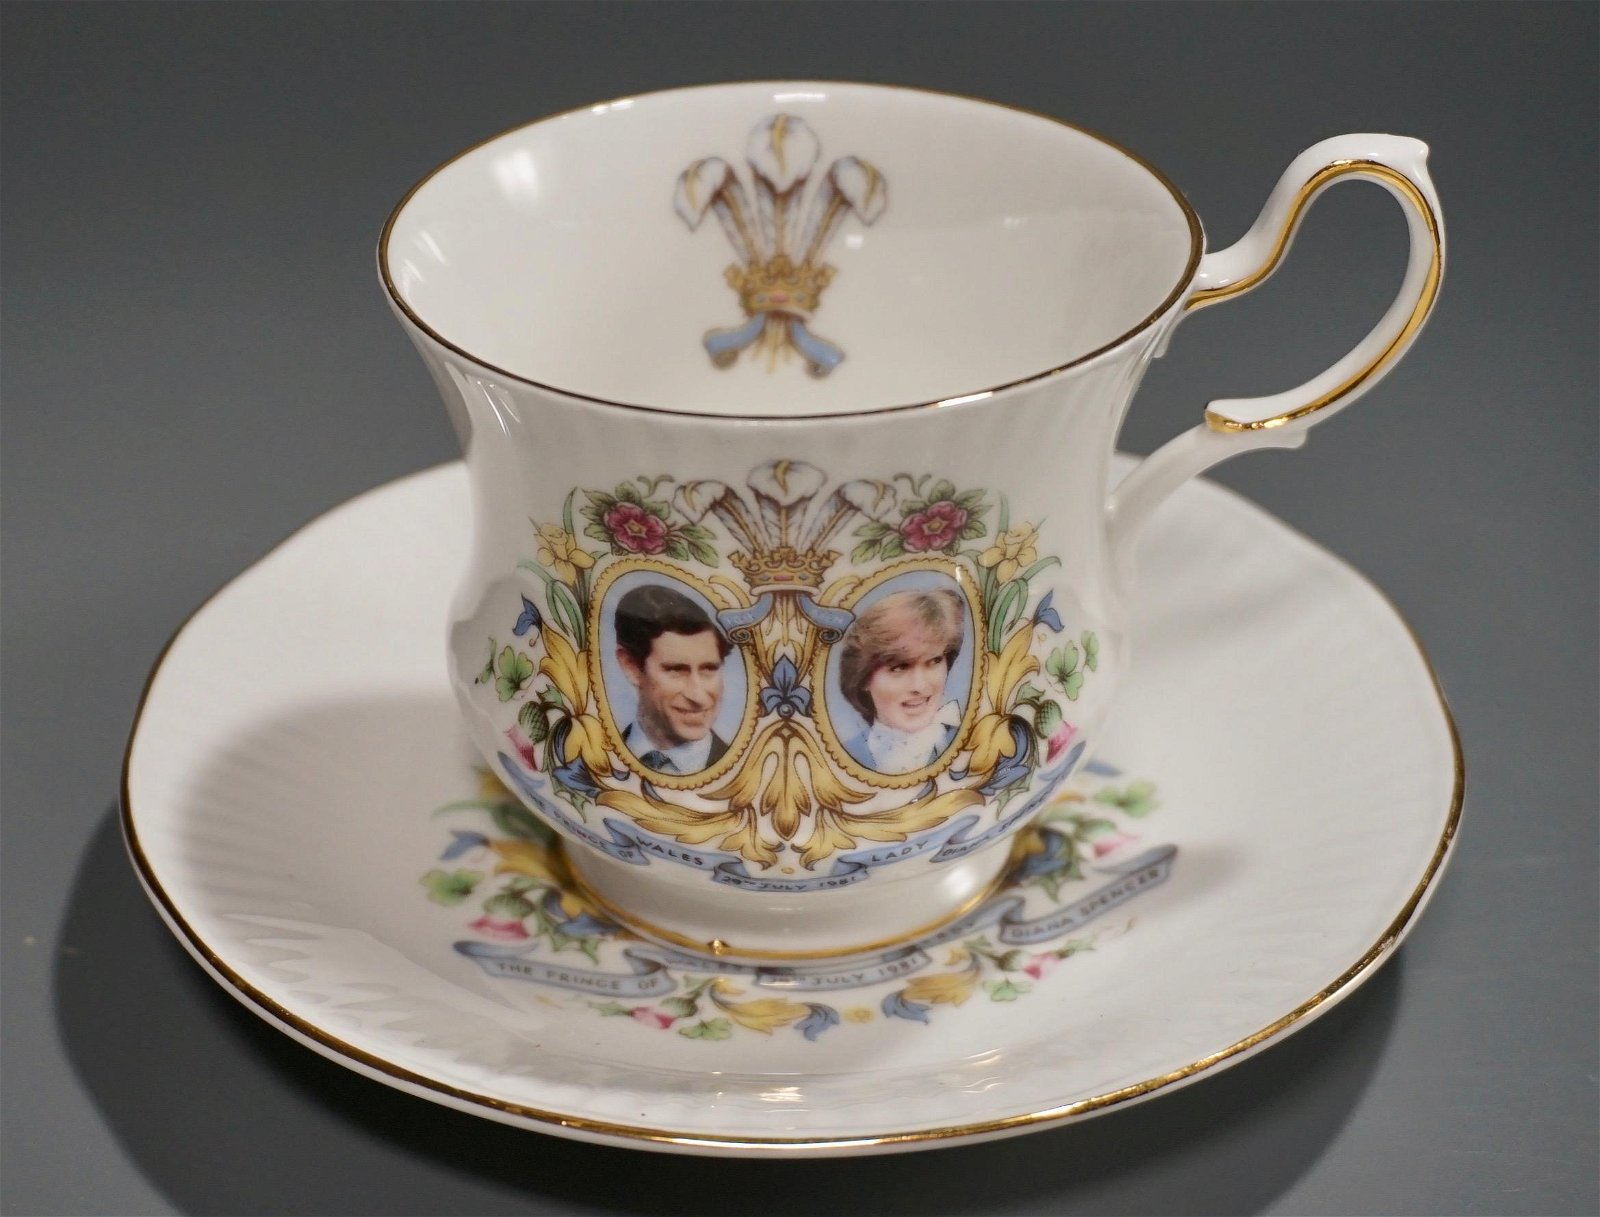 Lady Diana Prince of Wales Queens China Tea Cup Saucer